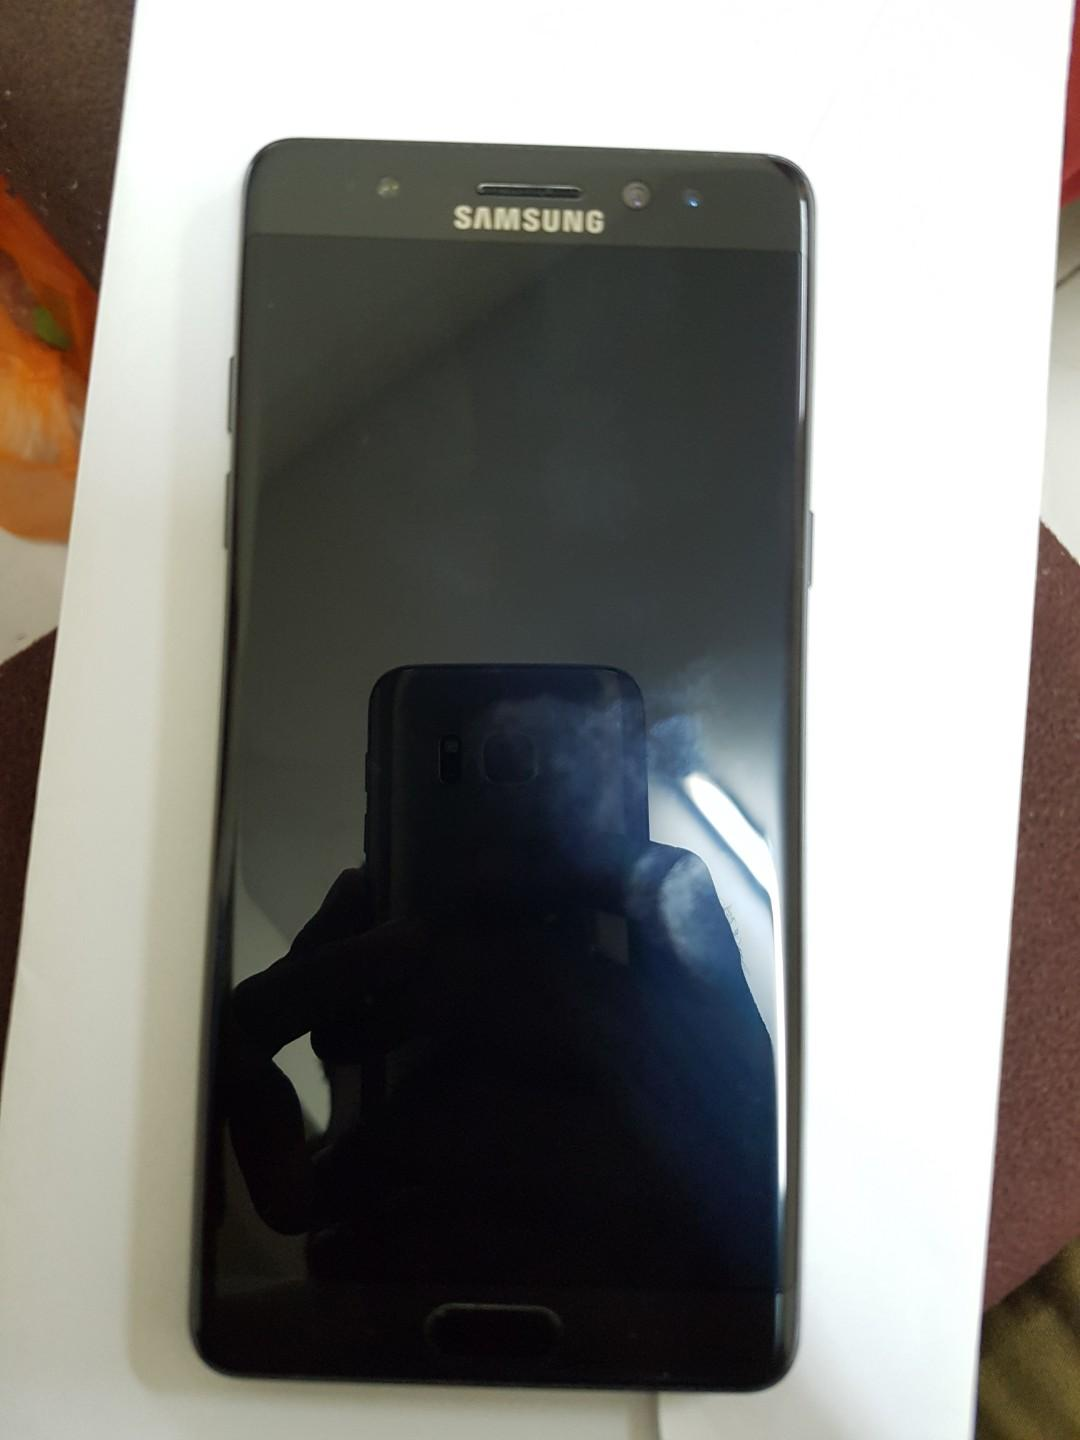 Samsung Galaxy Note Fan Edition Dual Sim Black